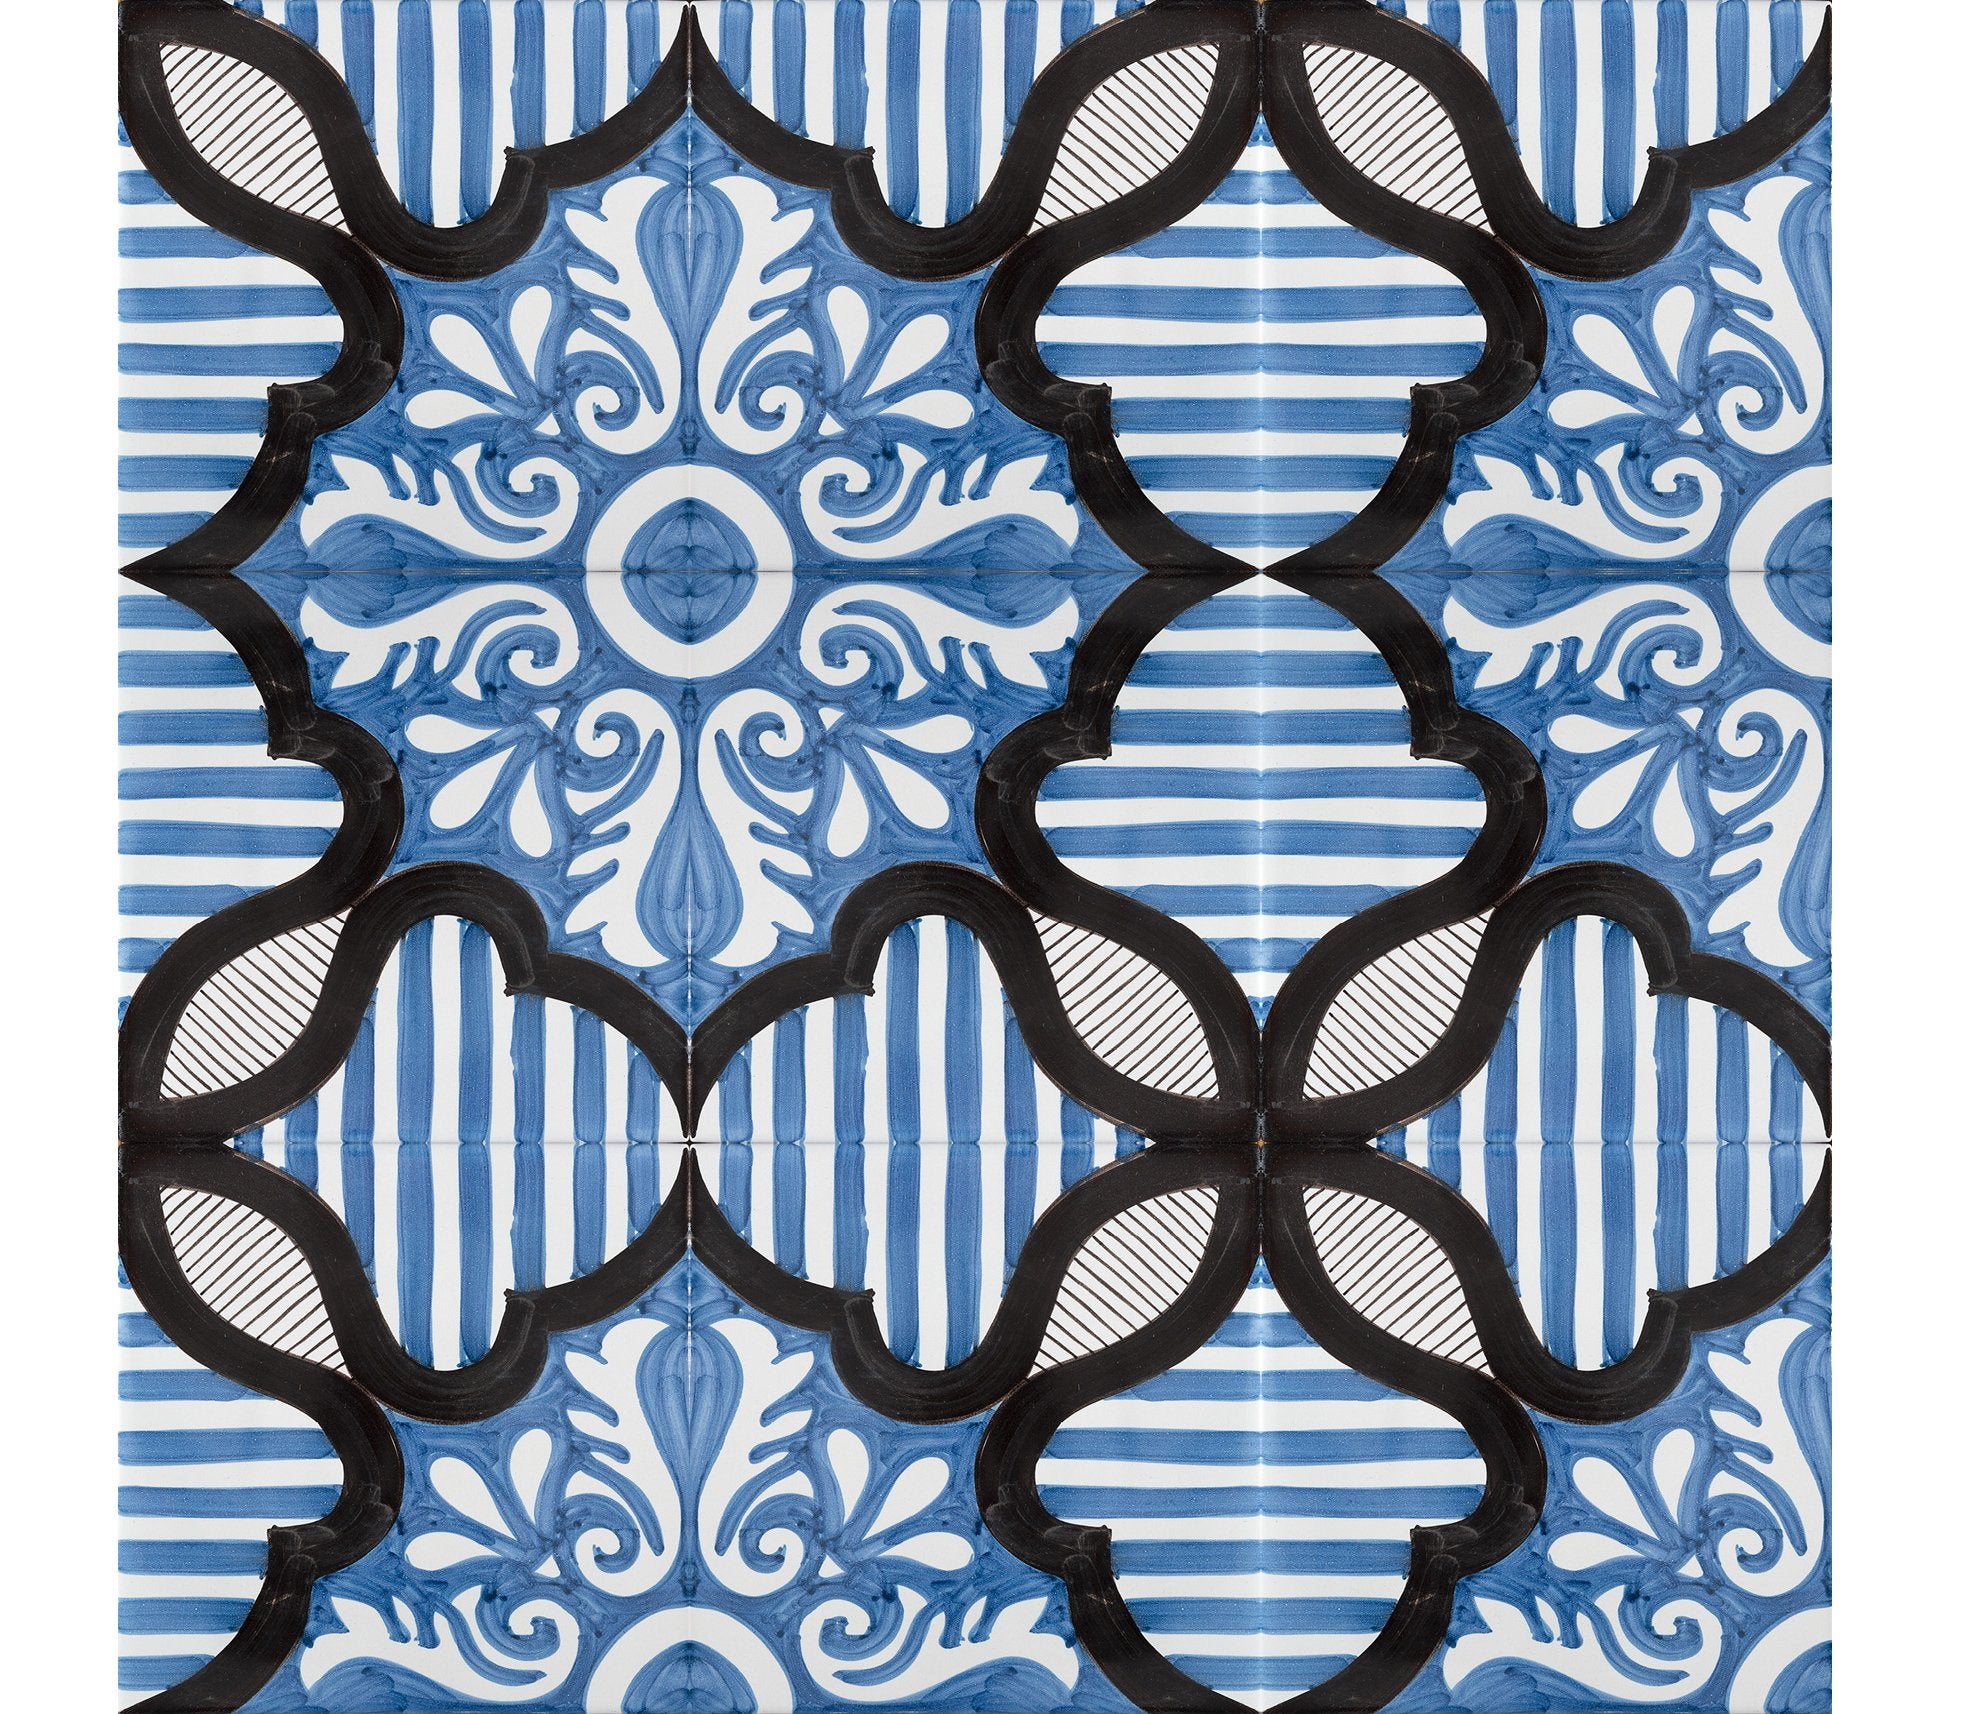 Series S Handpainted Tiles Product Image 22